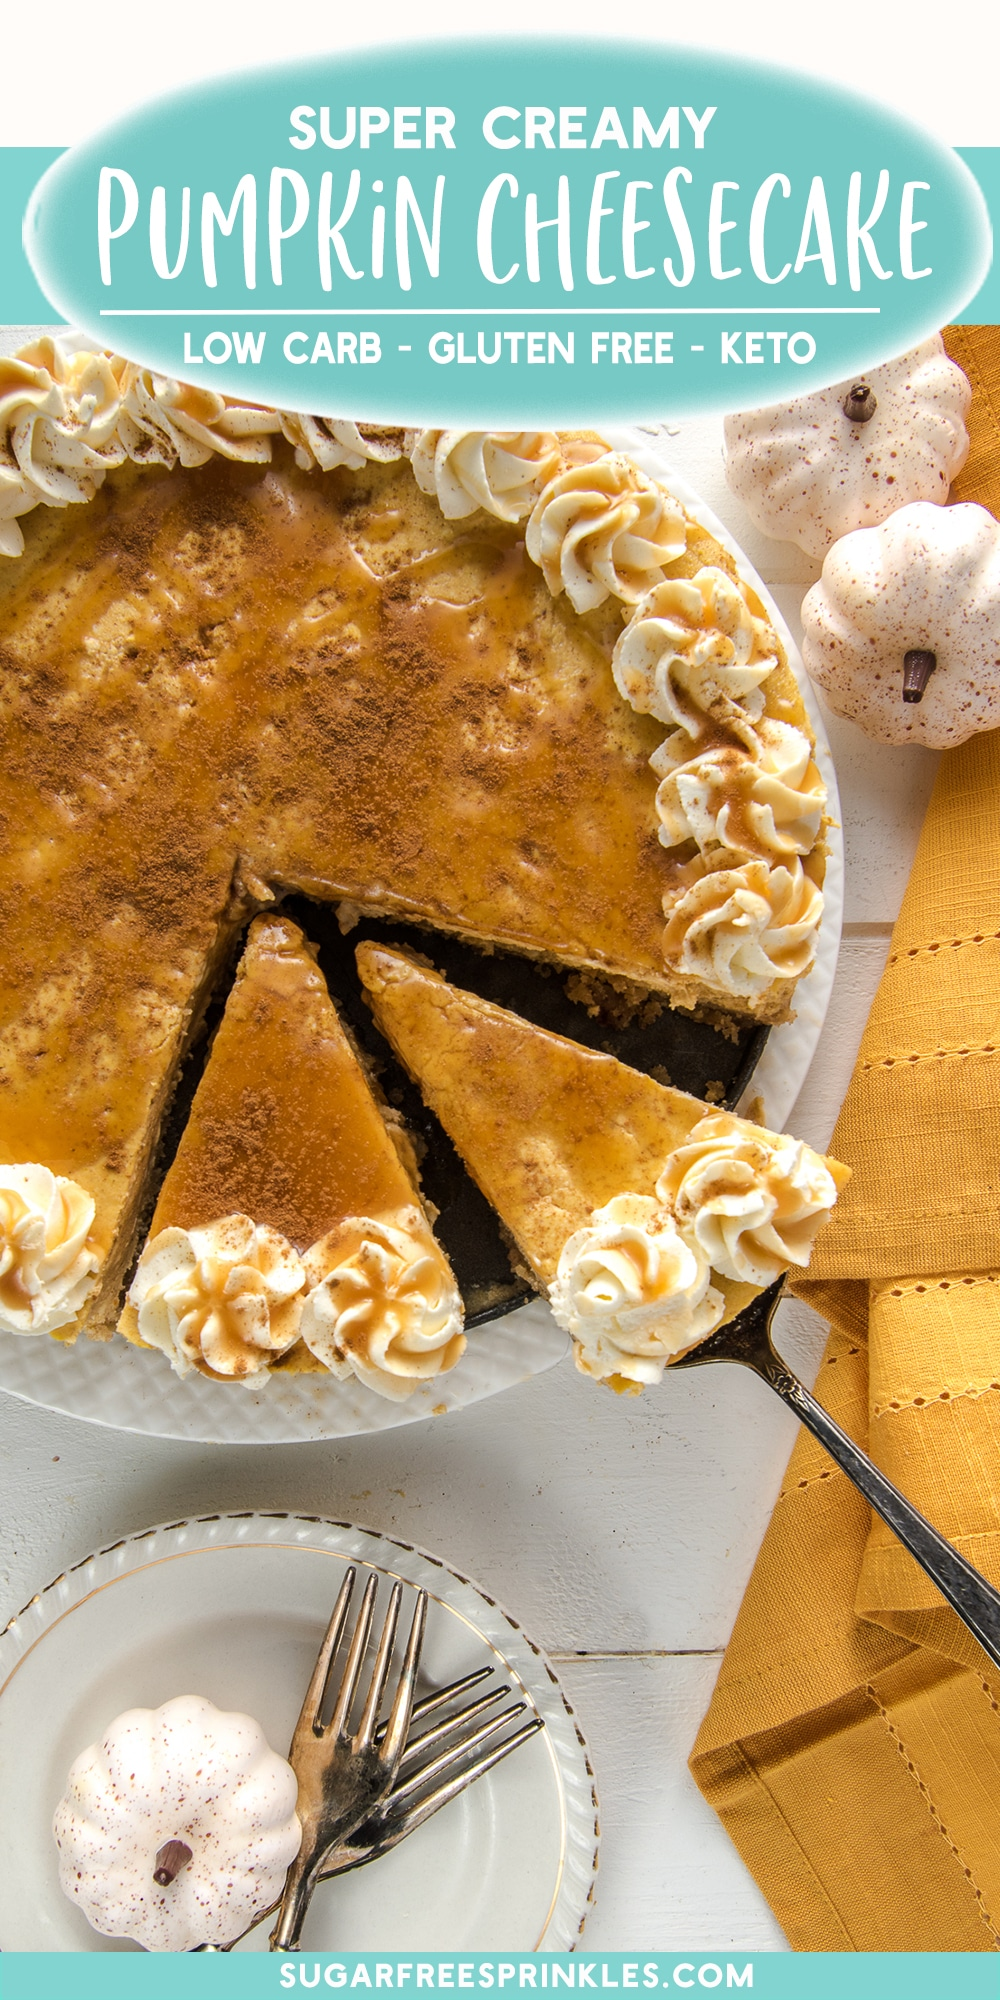 A low carb pumpkin cheesecake recipe perfect for Thanksgiving or any holiday meal. This pumpkin cheesecake is filled with warm fall spices like cinnamon, nutmeg, and ground cloves. This is a perfect low carb dessert recipe to wow at the end of a family meal. This recipe is also keto-friendly and has no added refined sugar. #thanksgivingdessert #lowcarbcheesecake #pumpkincheesecake #holidaydesserts #ketocheesecake